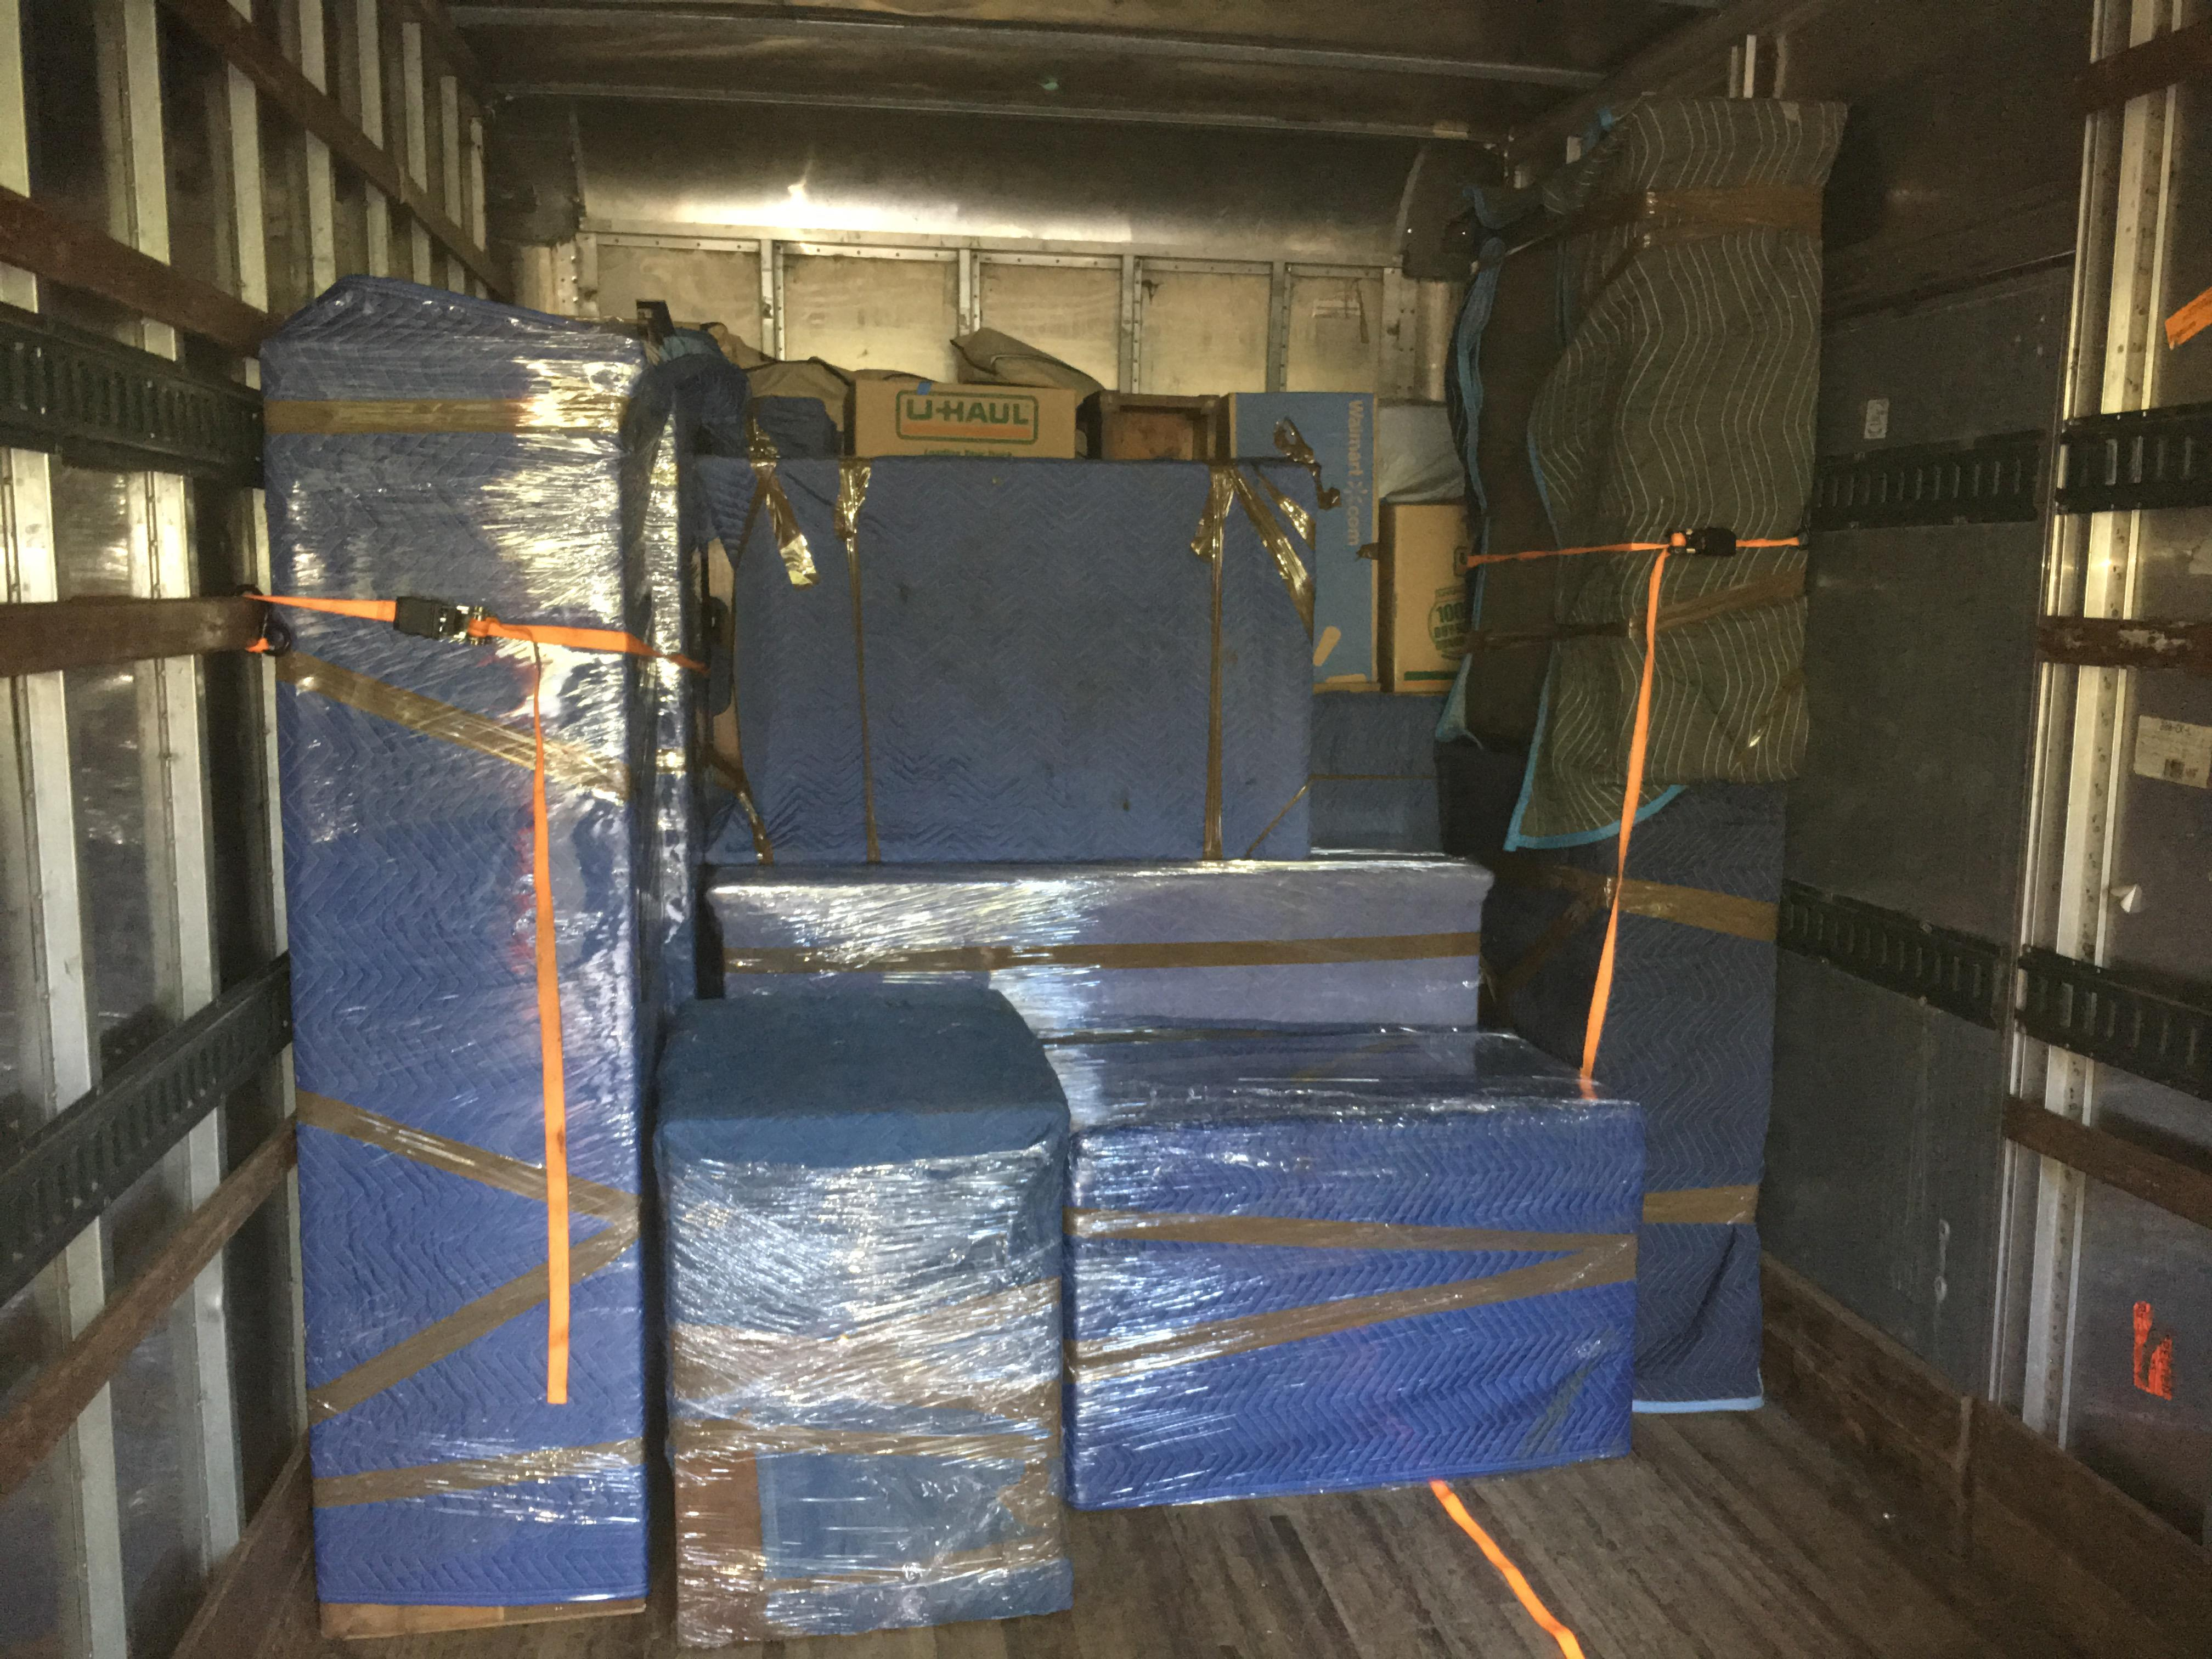 Wrapped furniture stocked in truck during move.